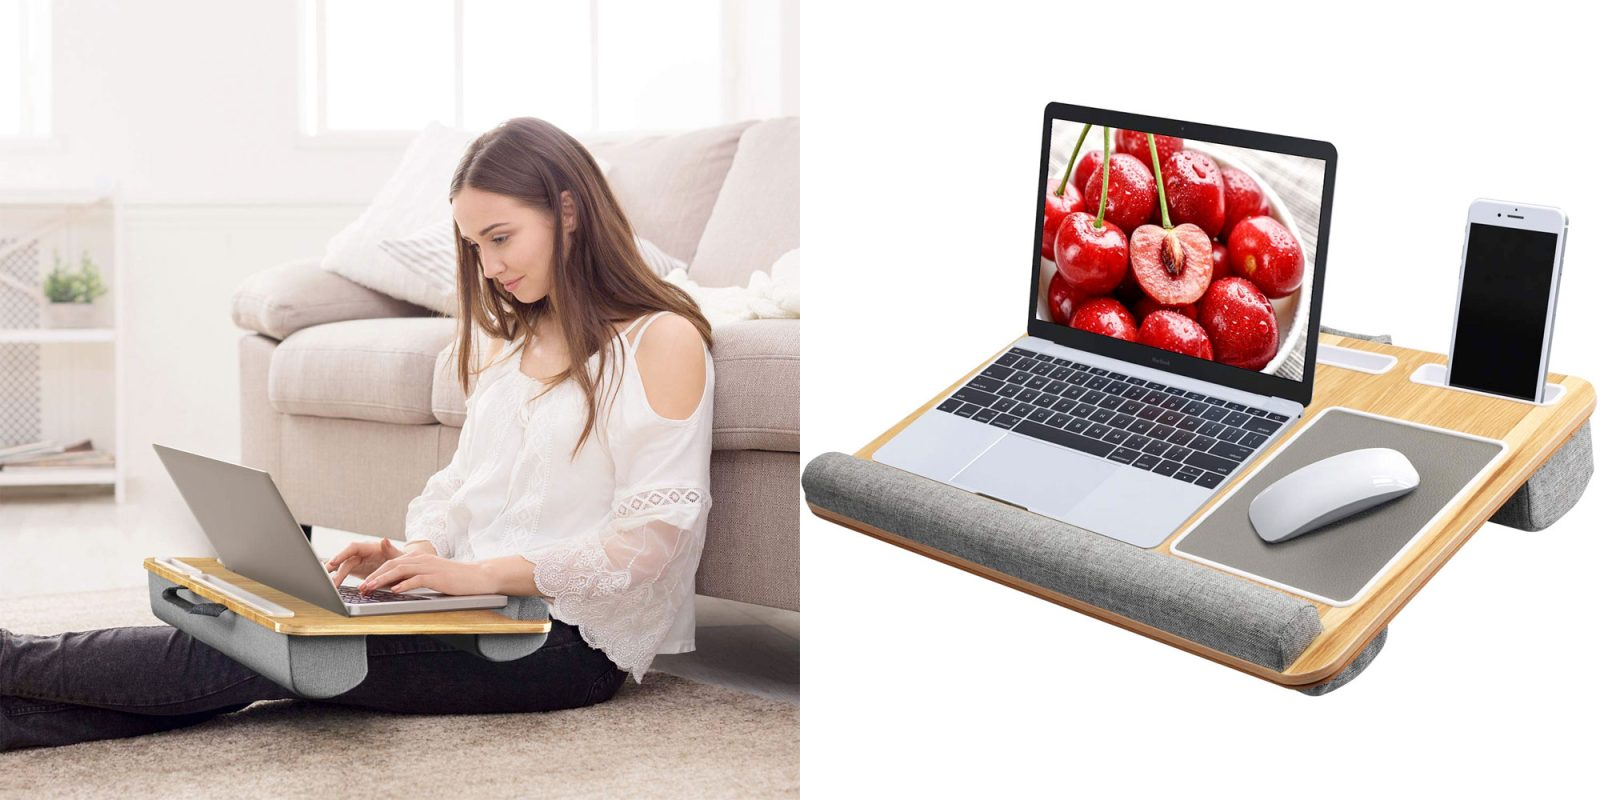 Enjoy working from your couch or bed w/ this highly-rated lap desk for $33 (Reg. $50)